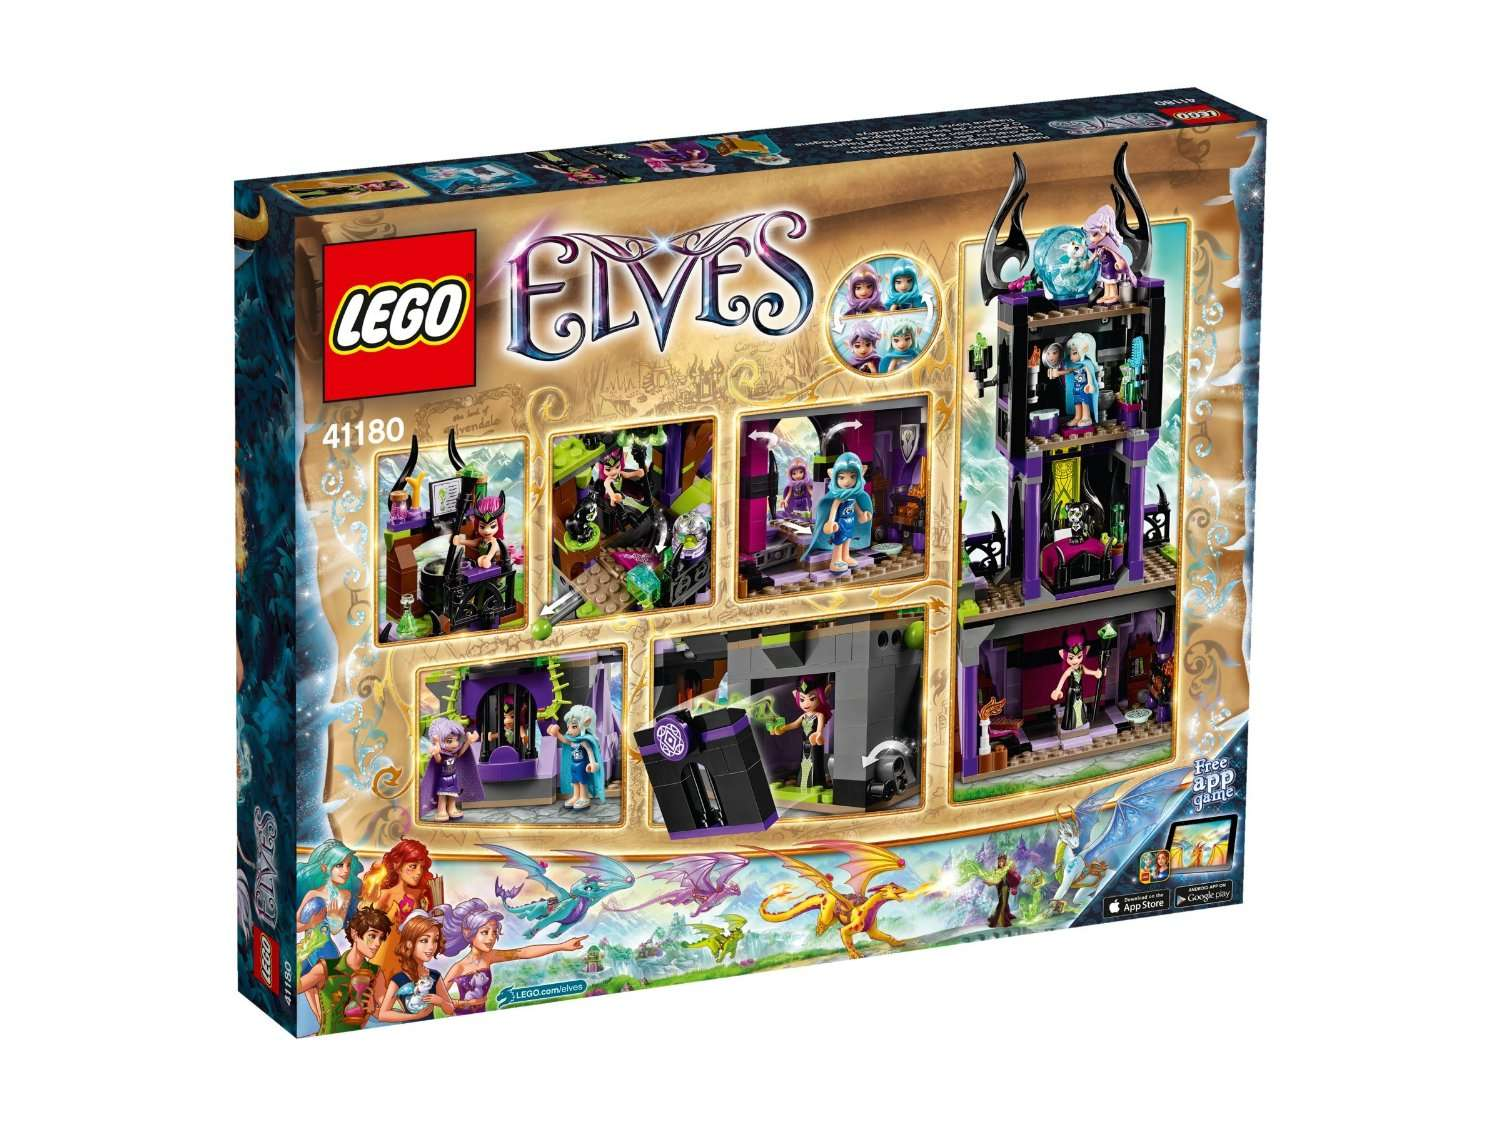 Lego Elves 2016 ! - Page 7 91lsdd10